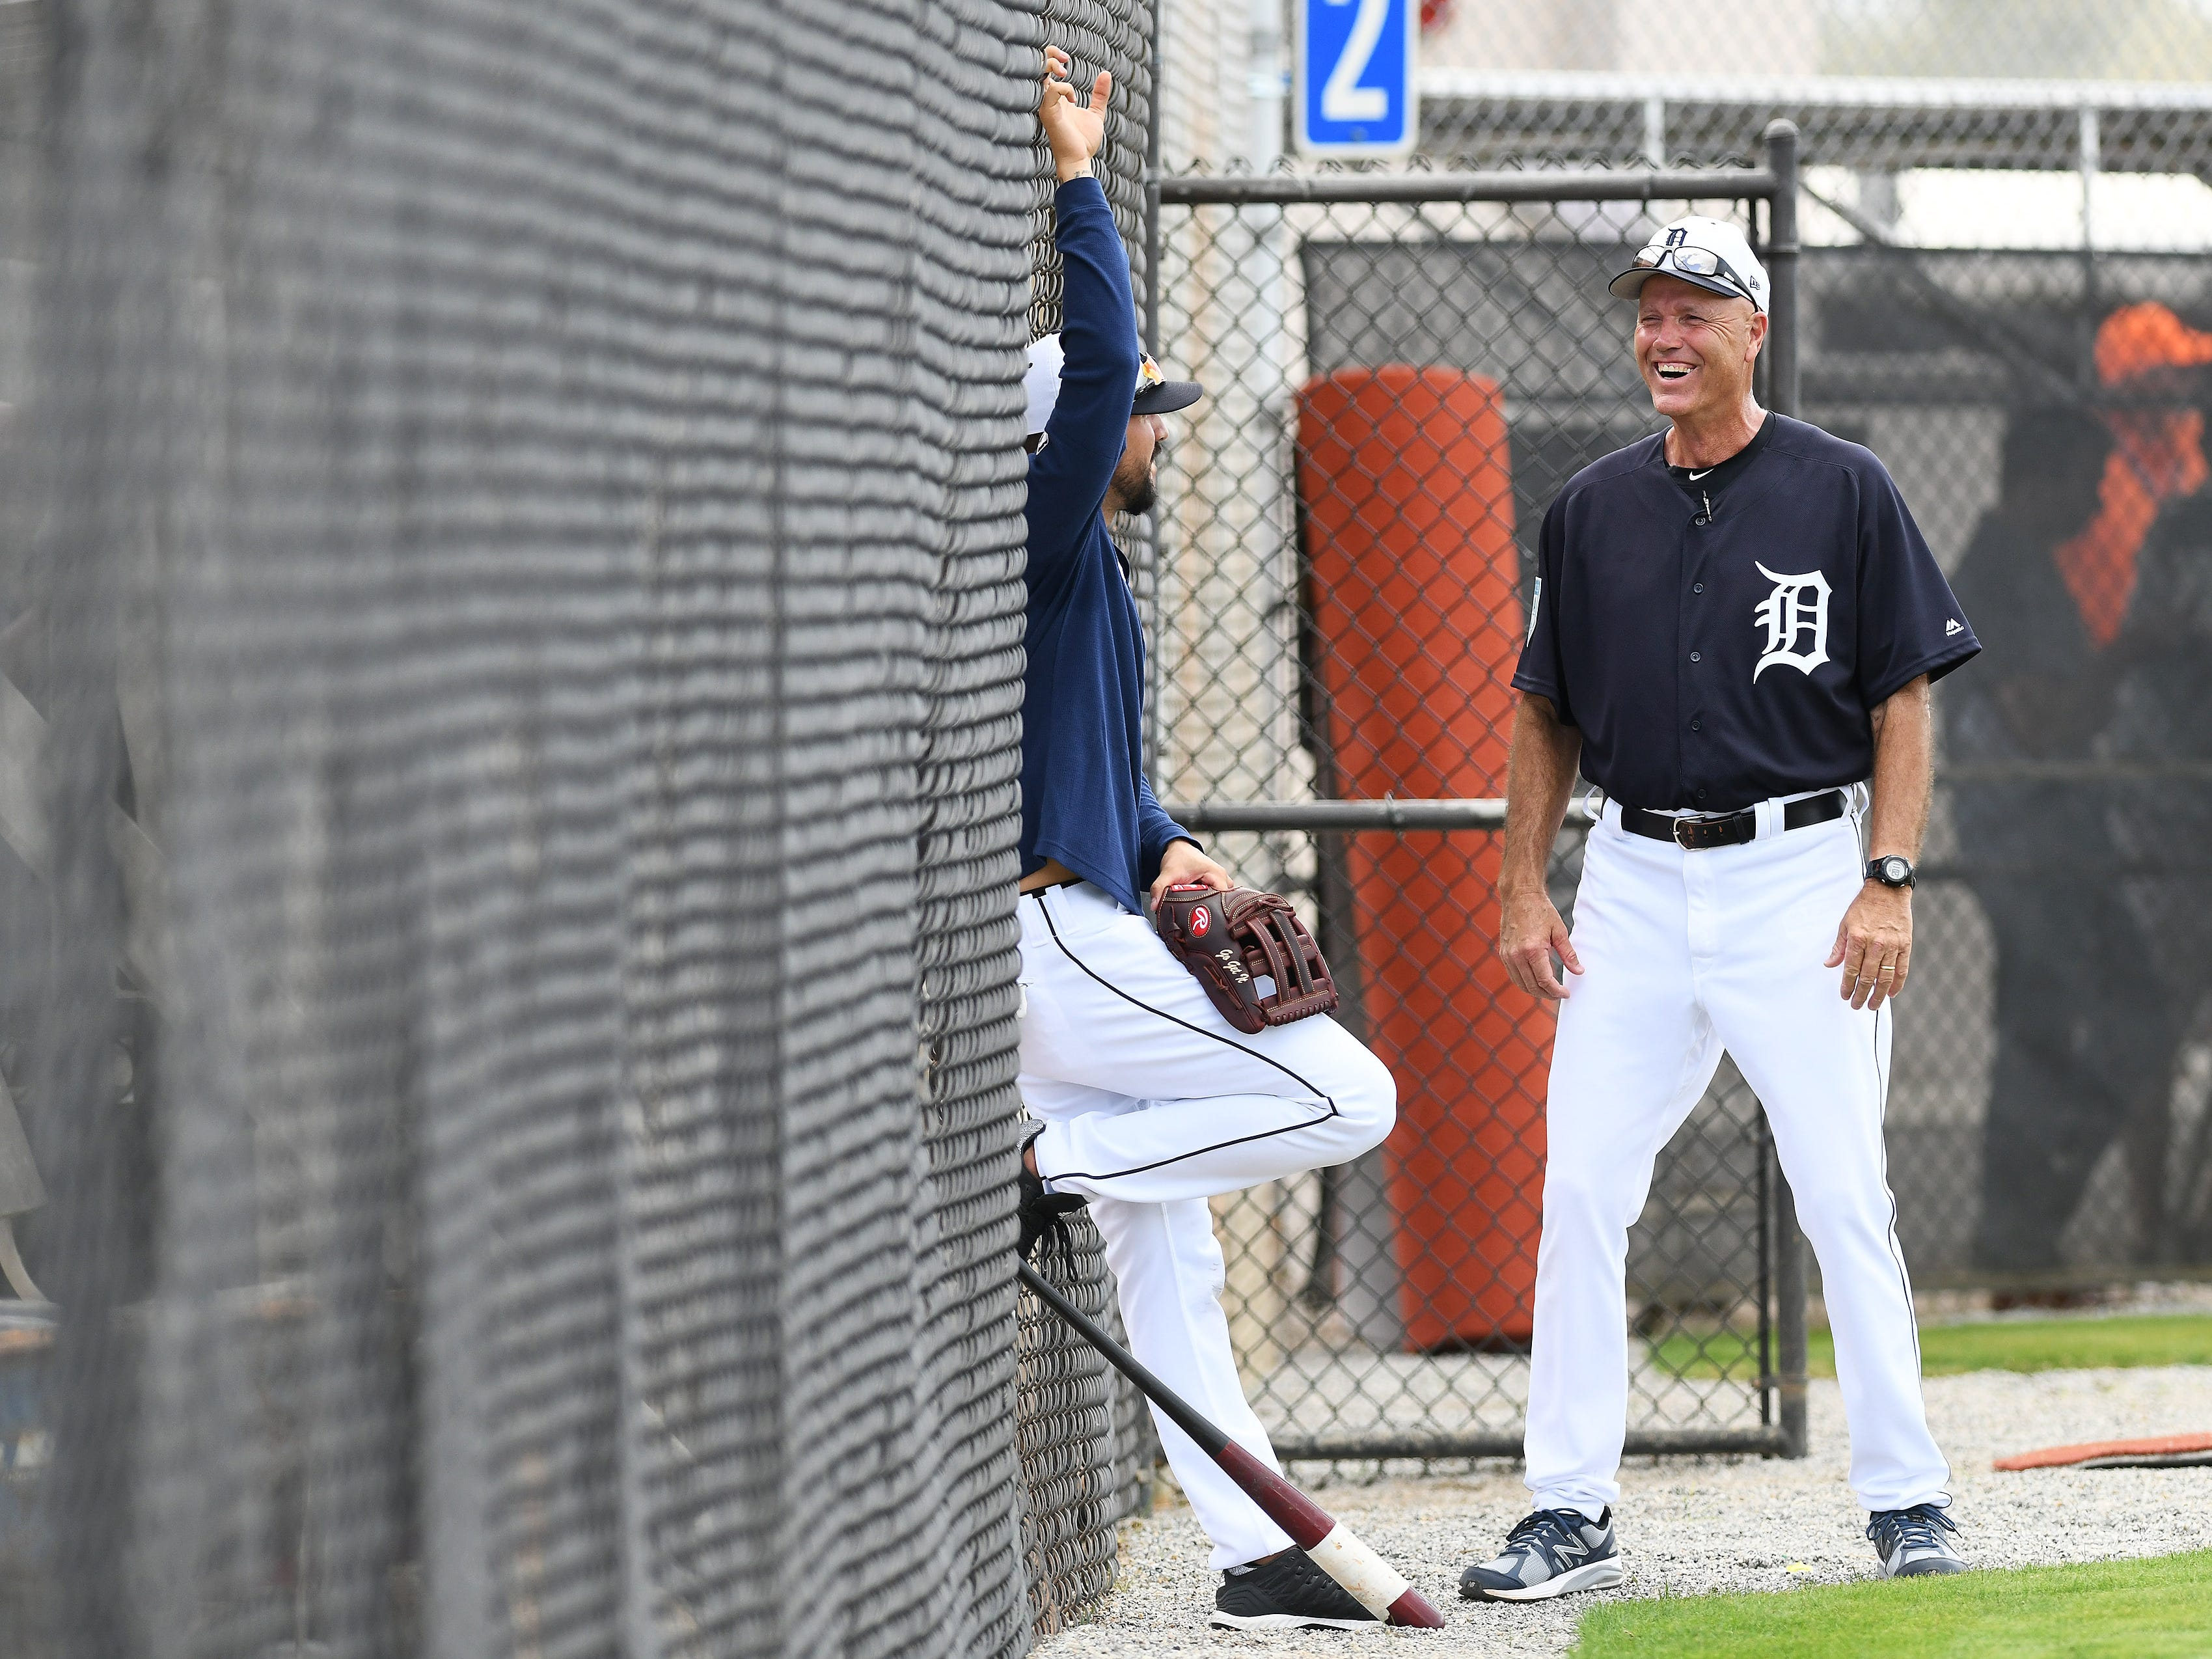 Tigers bench coach Steve Liddle talks with Nick Castellanos during batting practice.